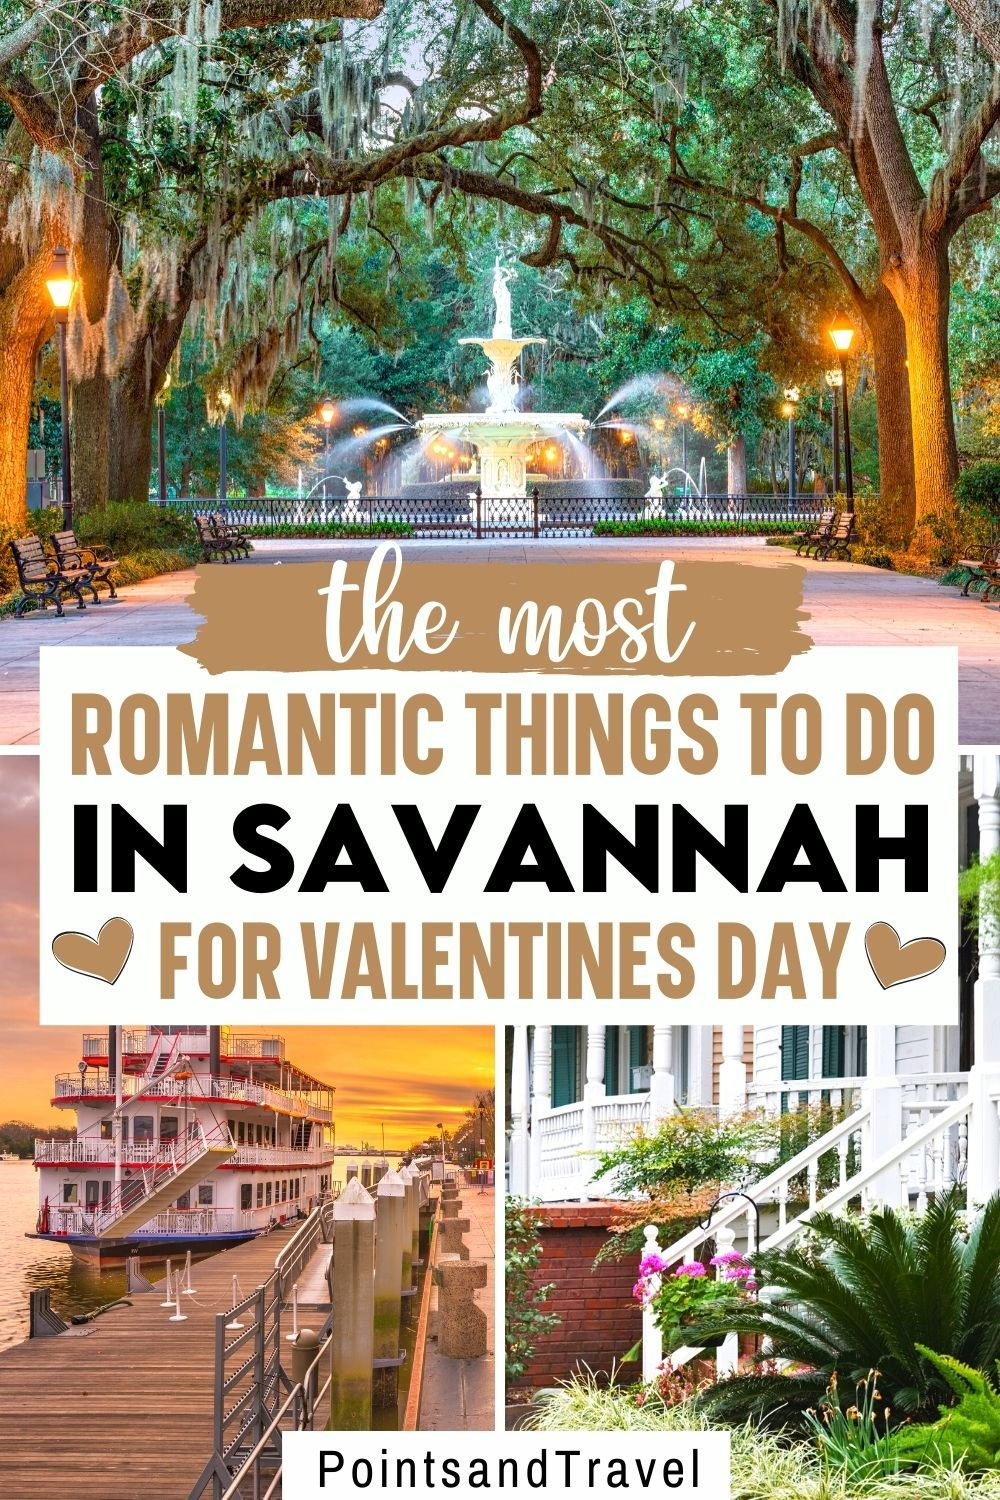 Romantic Things To Do In Savannah Ga In 2021 United States Travel Destinations Usa Travel Destinations Romantic Things To Do